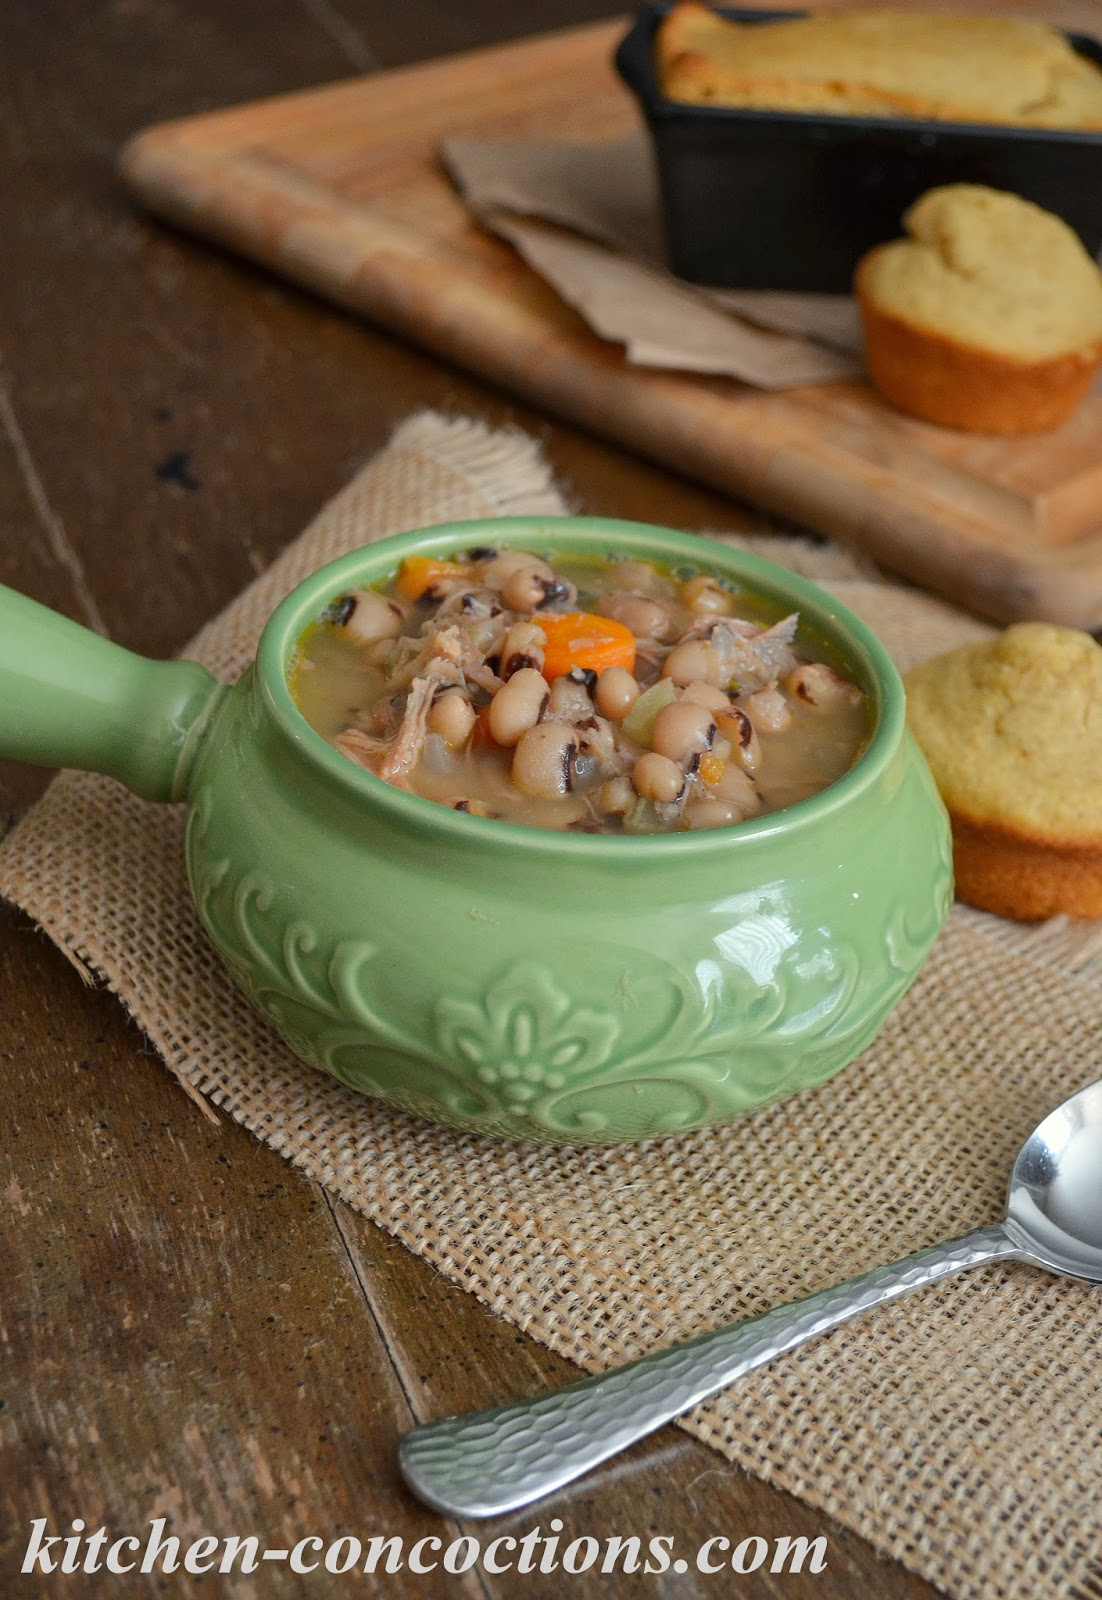 Kitchen Concoctions: Slow Cooker Black-Eyed Pea Soup